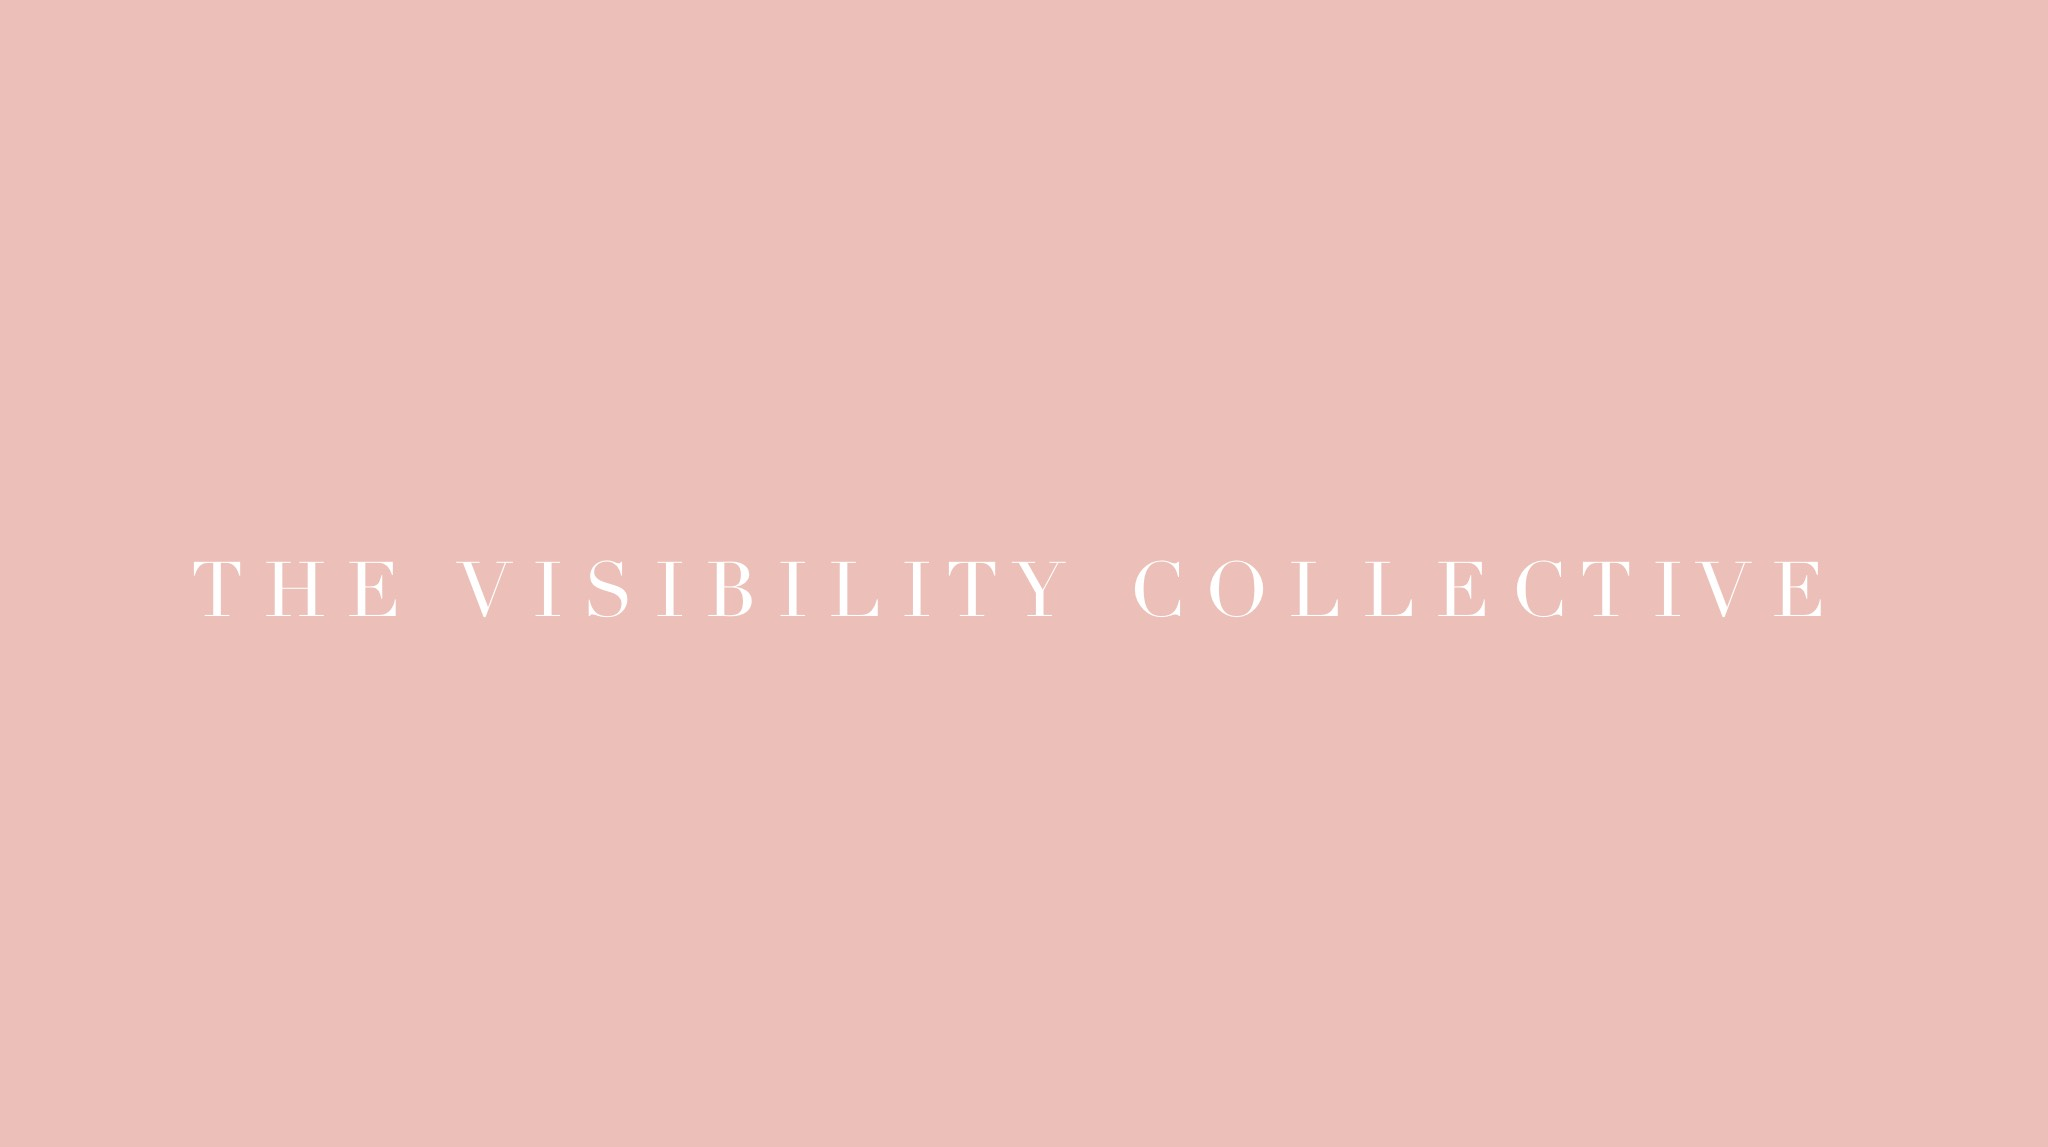 The visibility collective